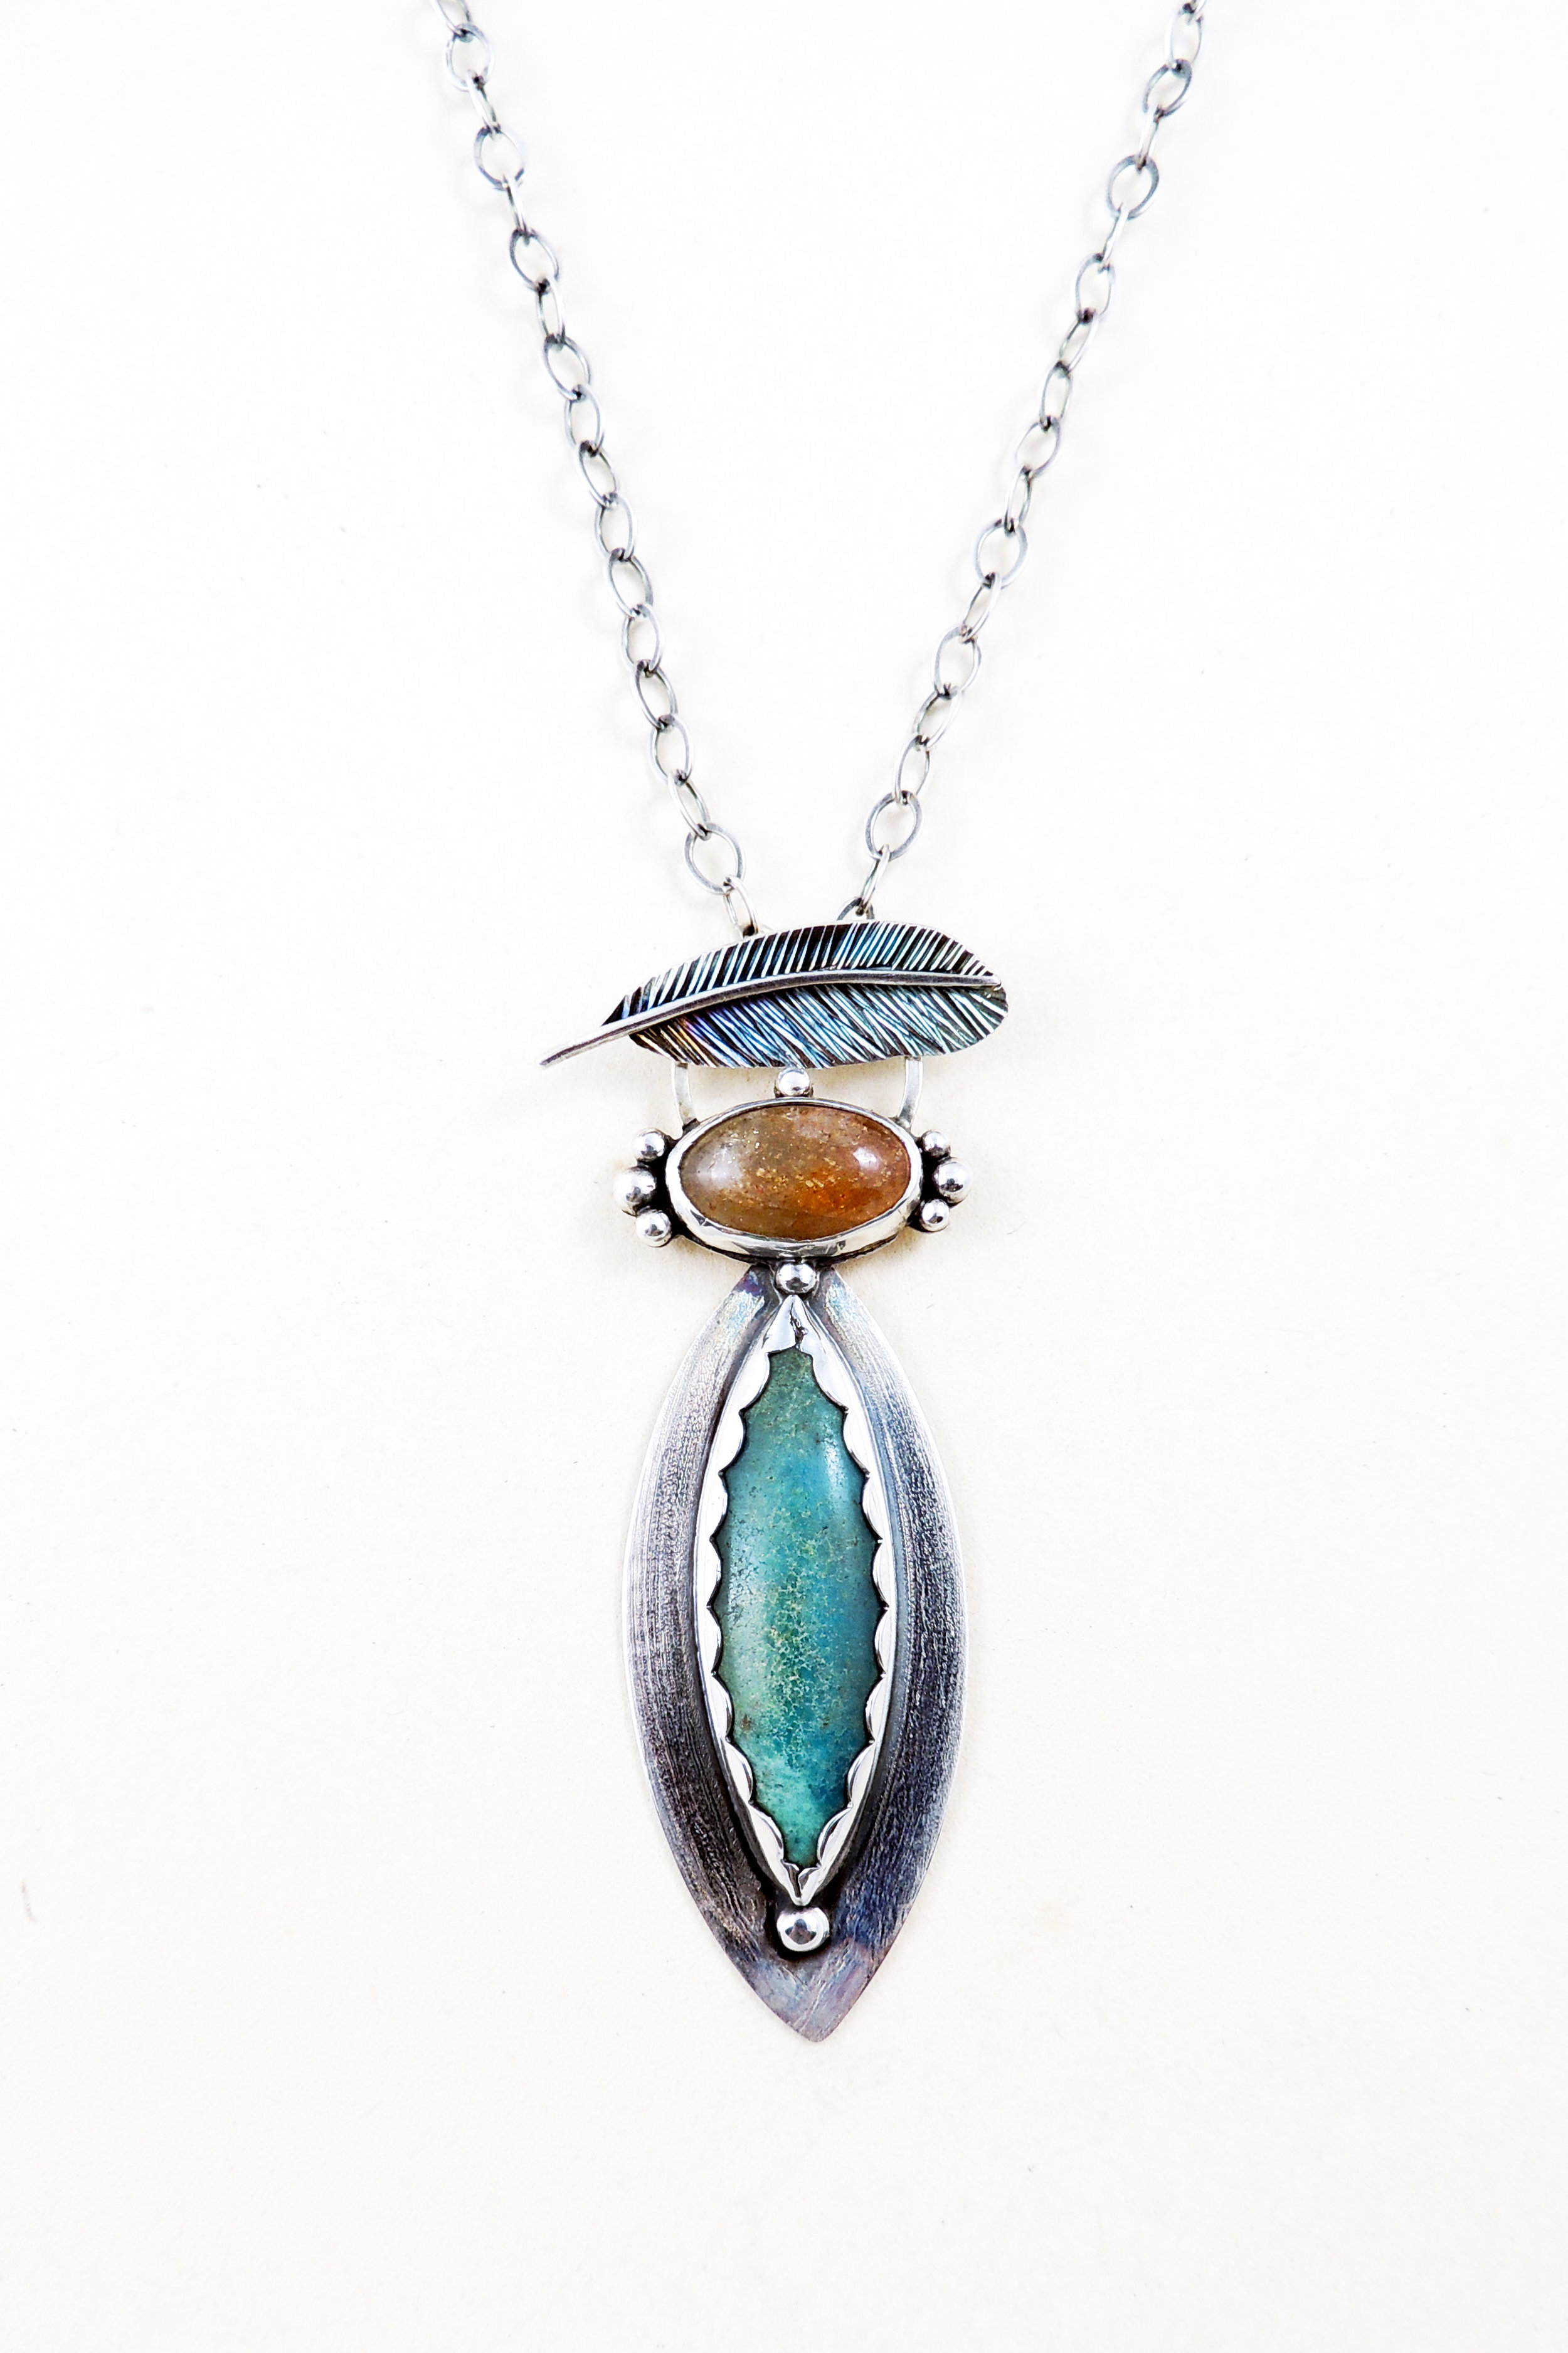 """Very pretty! The stones go together nicely and I love the feather toggle. This is my third """"bird"""" necklace from this artist. They are all unique, evoking their avian inspiration. Artist was very helpful and designed earrings to coordinate with this. Arrived quickly and nicely packaged.  -Christine K"""